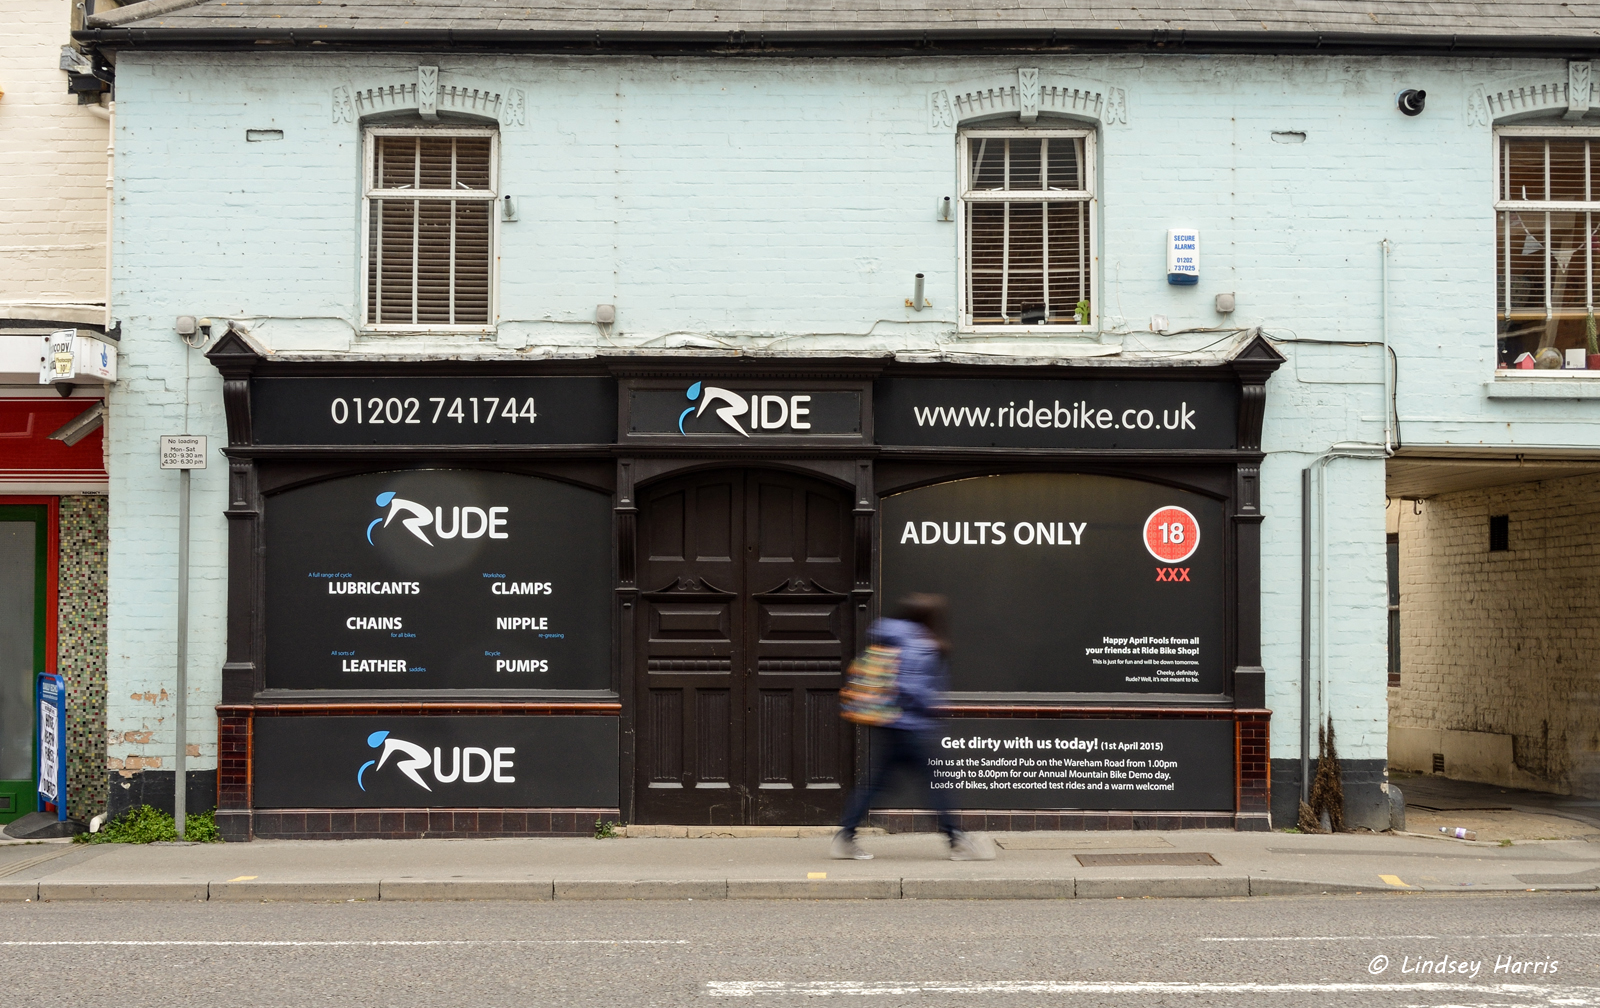 Ride bike shop turns into 'Rude' for April Fool's Day 2015.